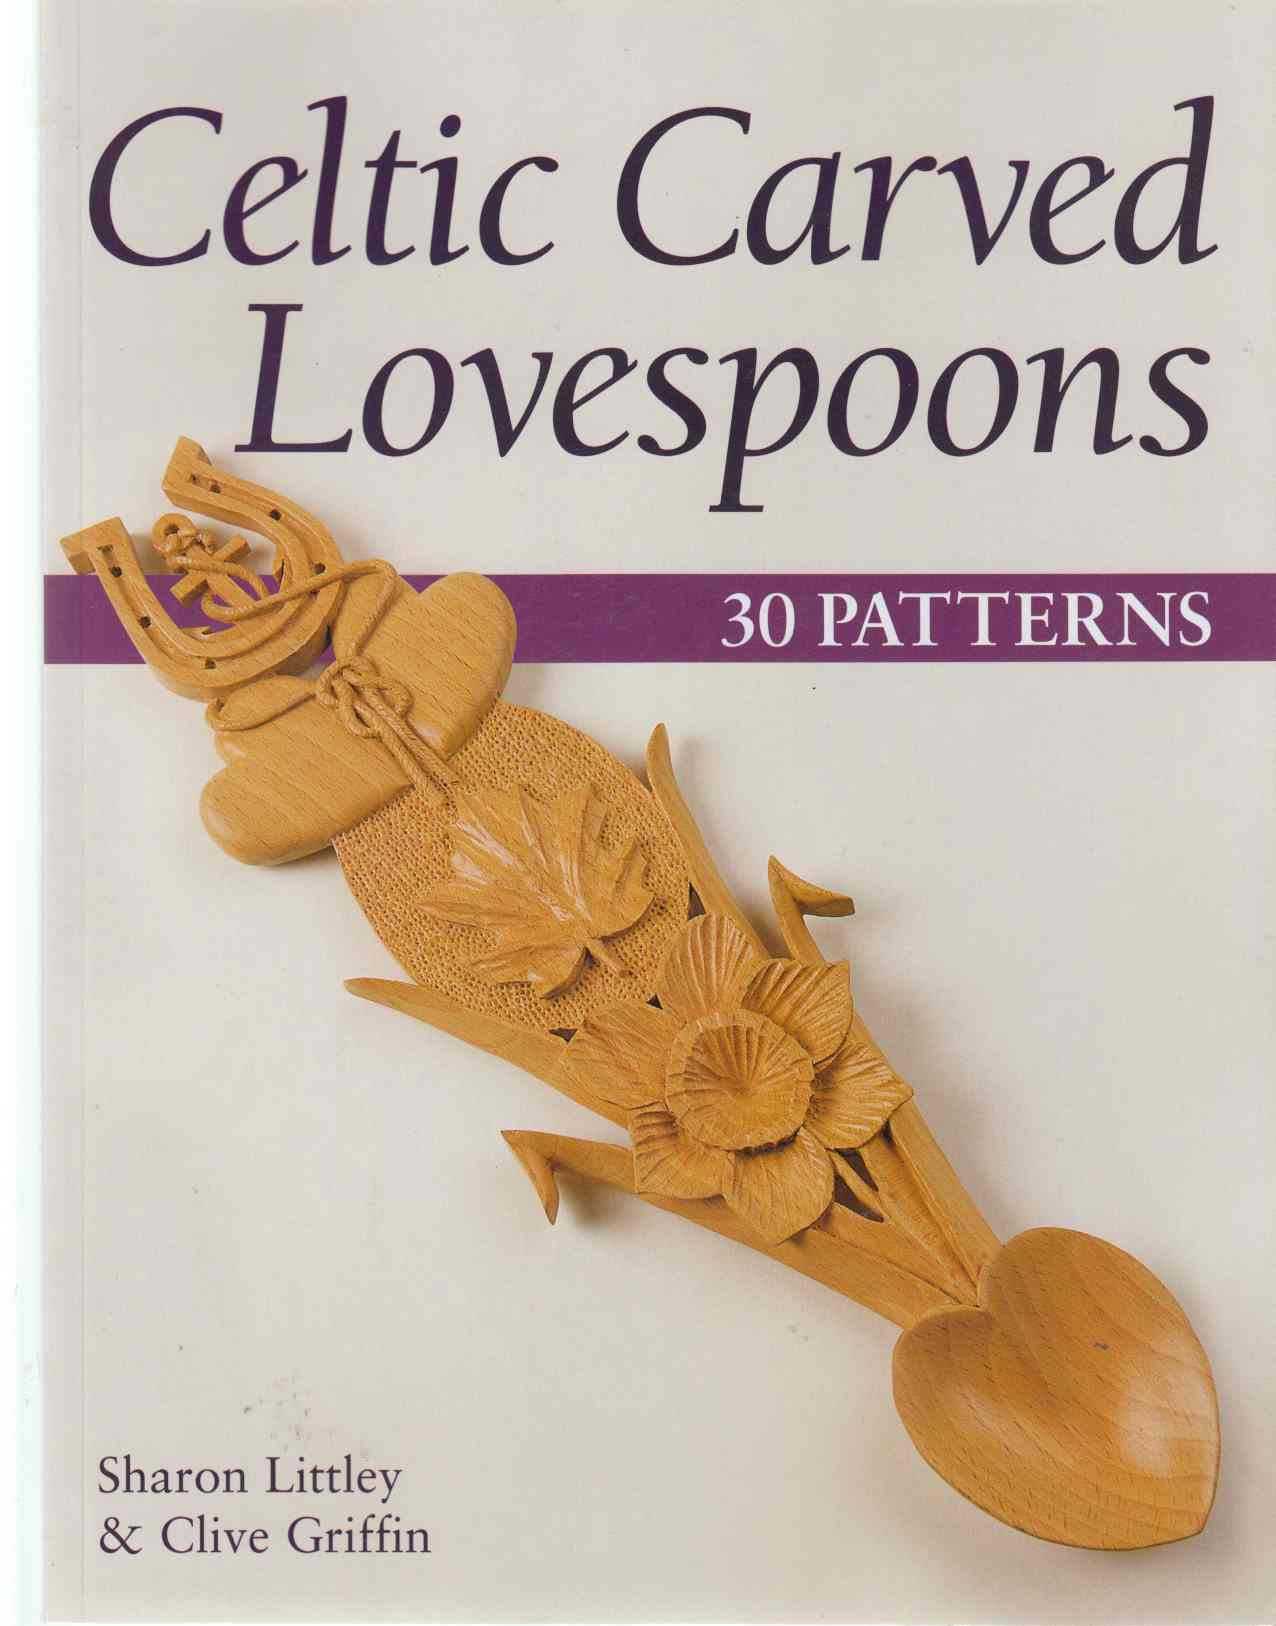 Image for Celtic Carved Lovespoons 30 Patterns